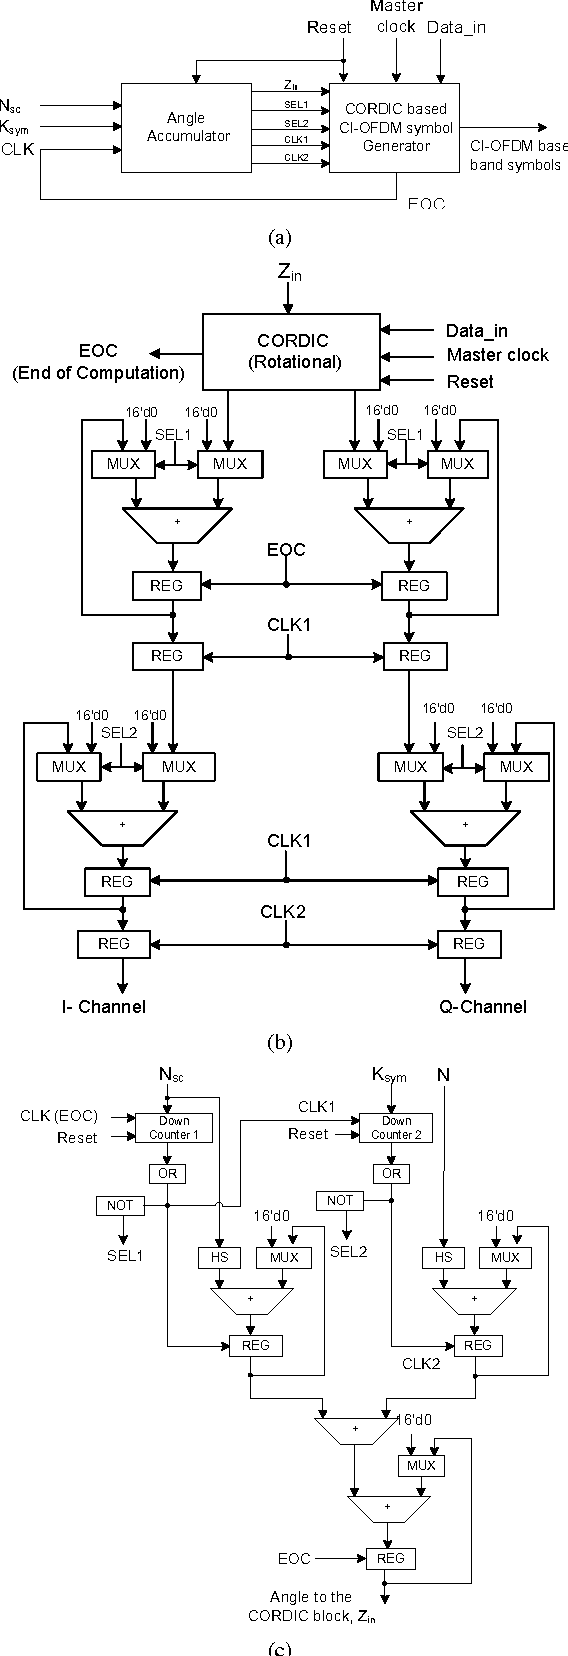 CORDIC-based VLSI architecture for implementing CI-OFDM and